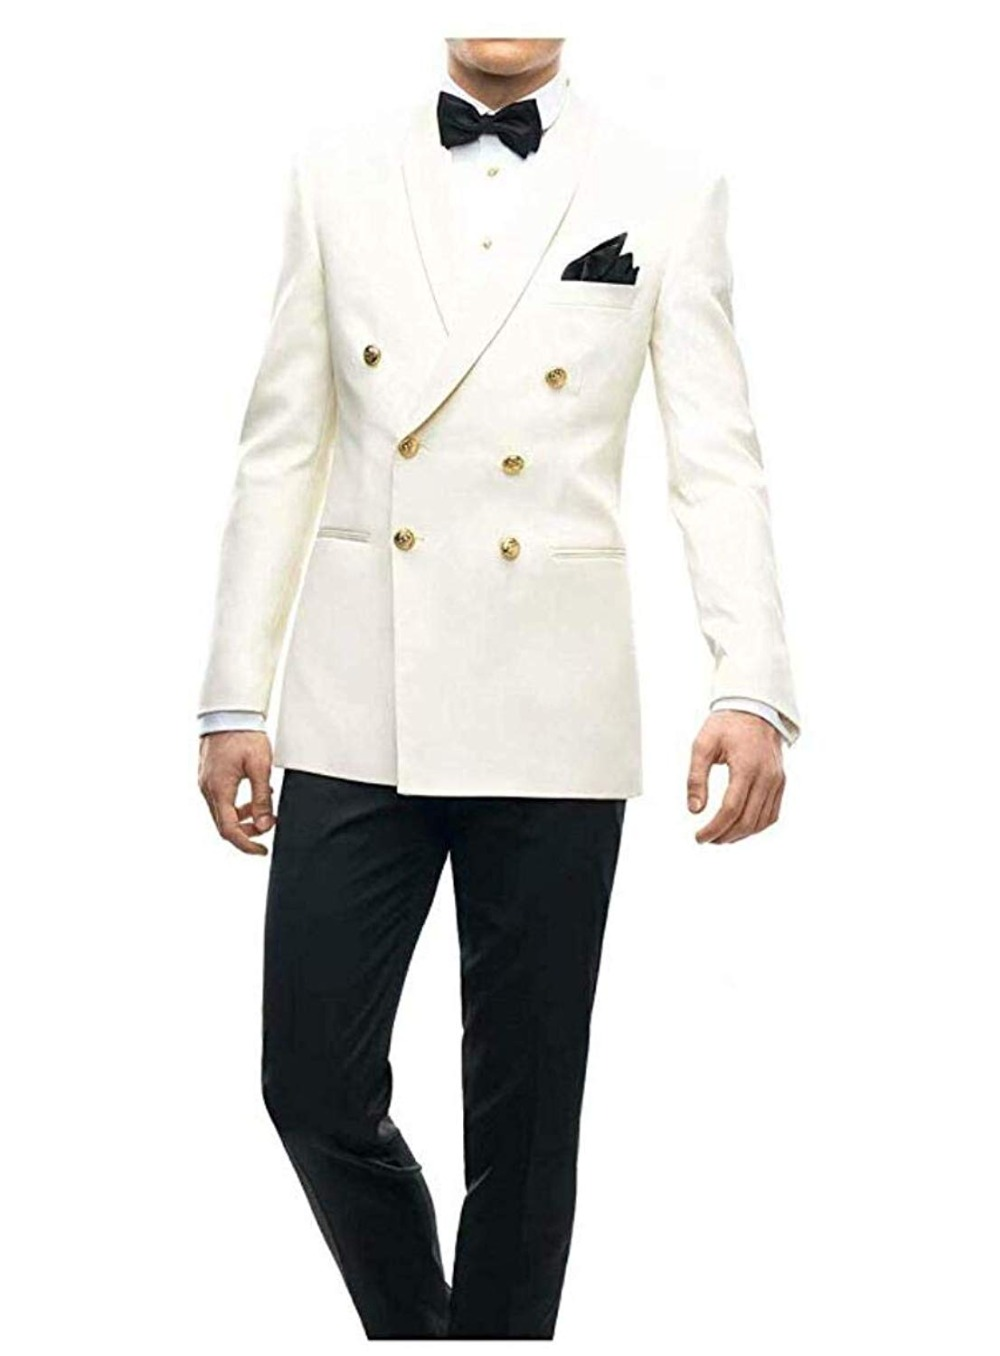 New Ivory Men Suits Double Breasted Blazer Wedding Suits Terno Masculino Smoking 2 Pieces Slim Fit  Jacket Tuxedos With Pants